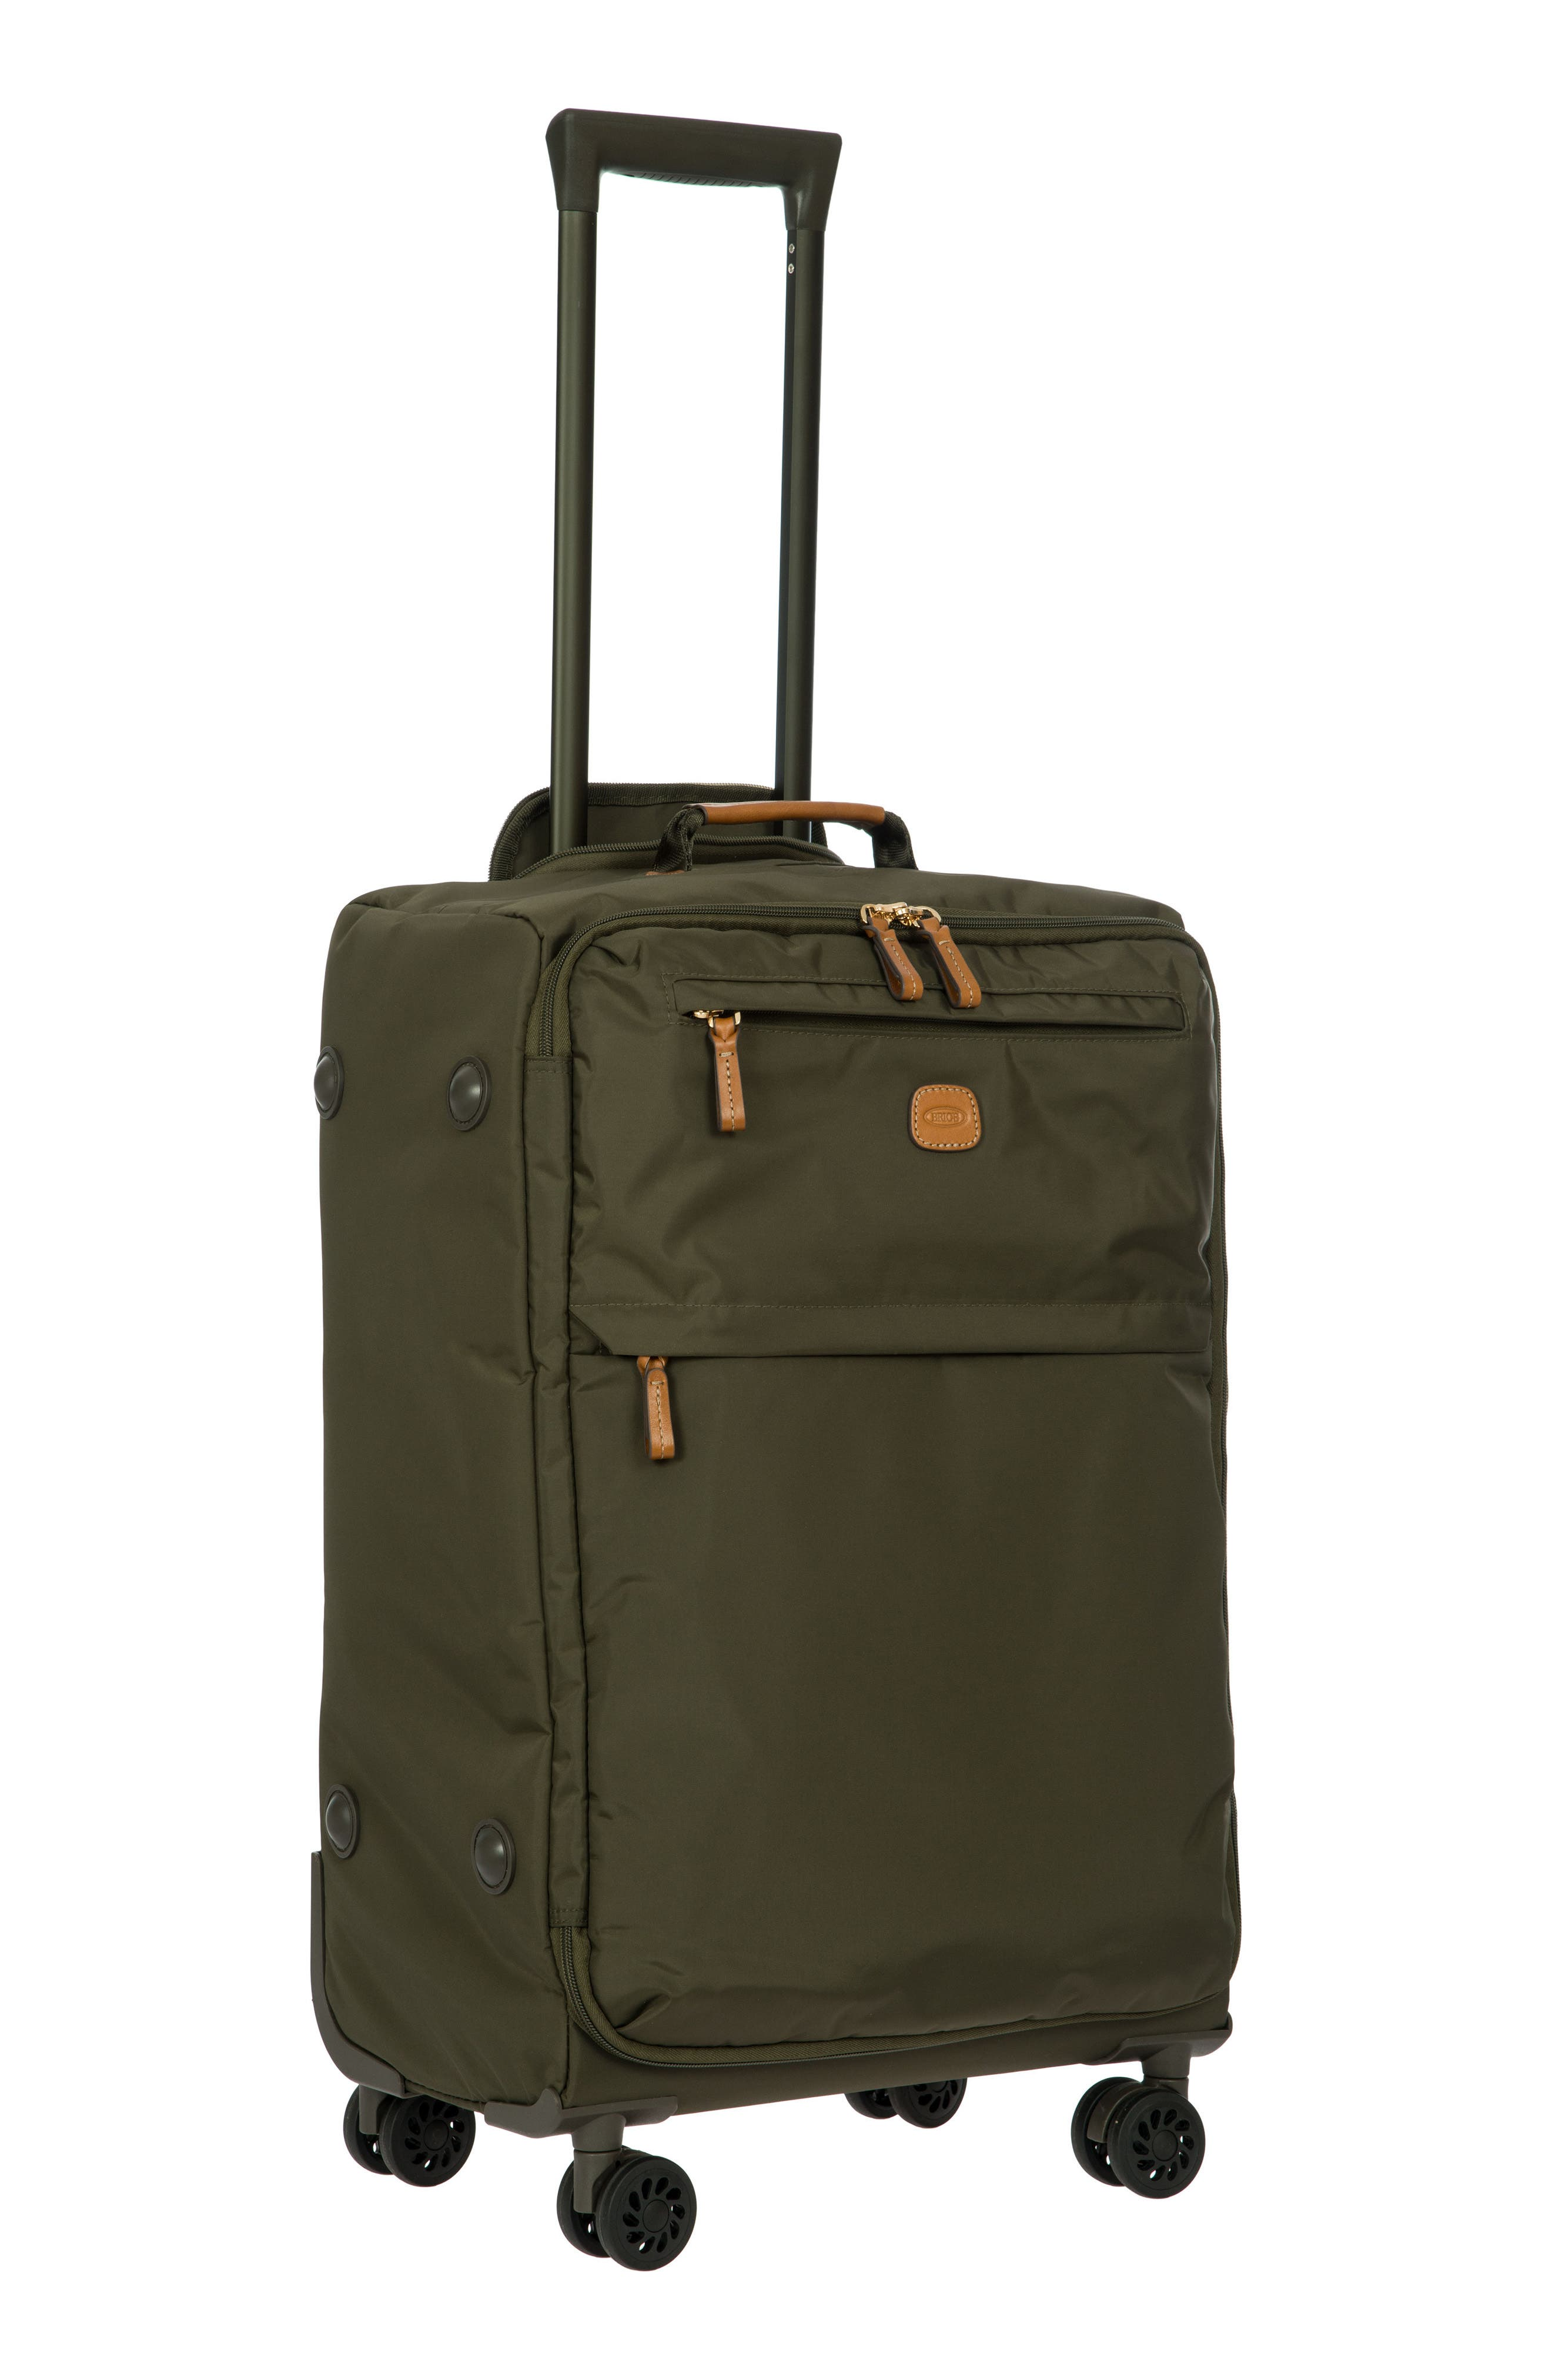 X-Bag 25-Inch Spinner Suitcase,                             Alternate thumbnail 10, color,                             OLIVE